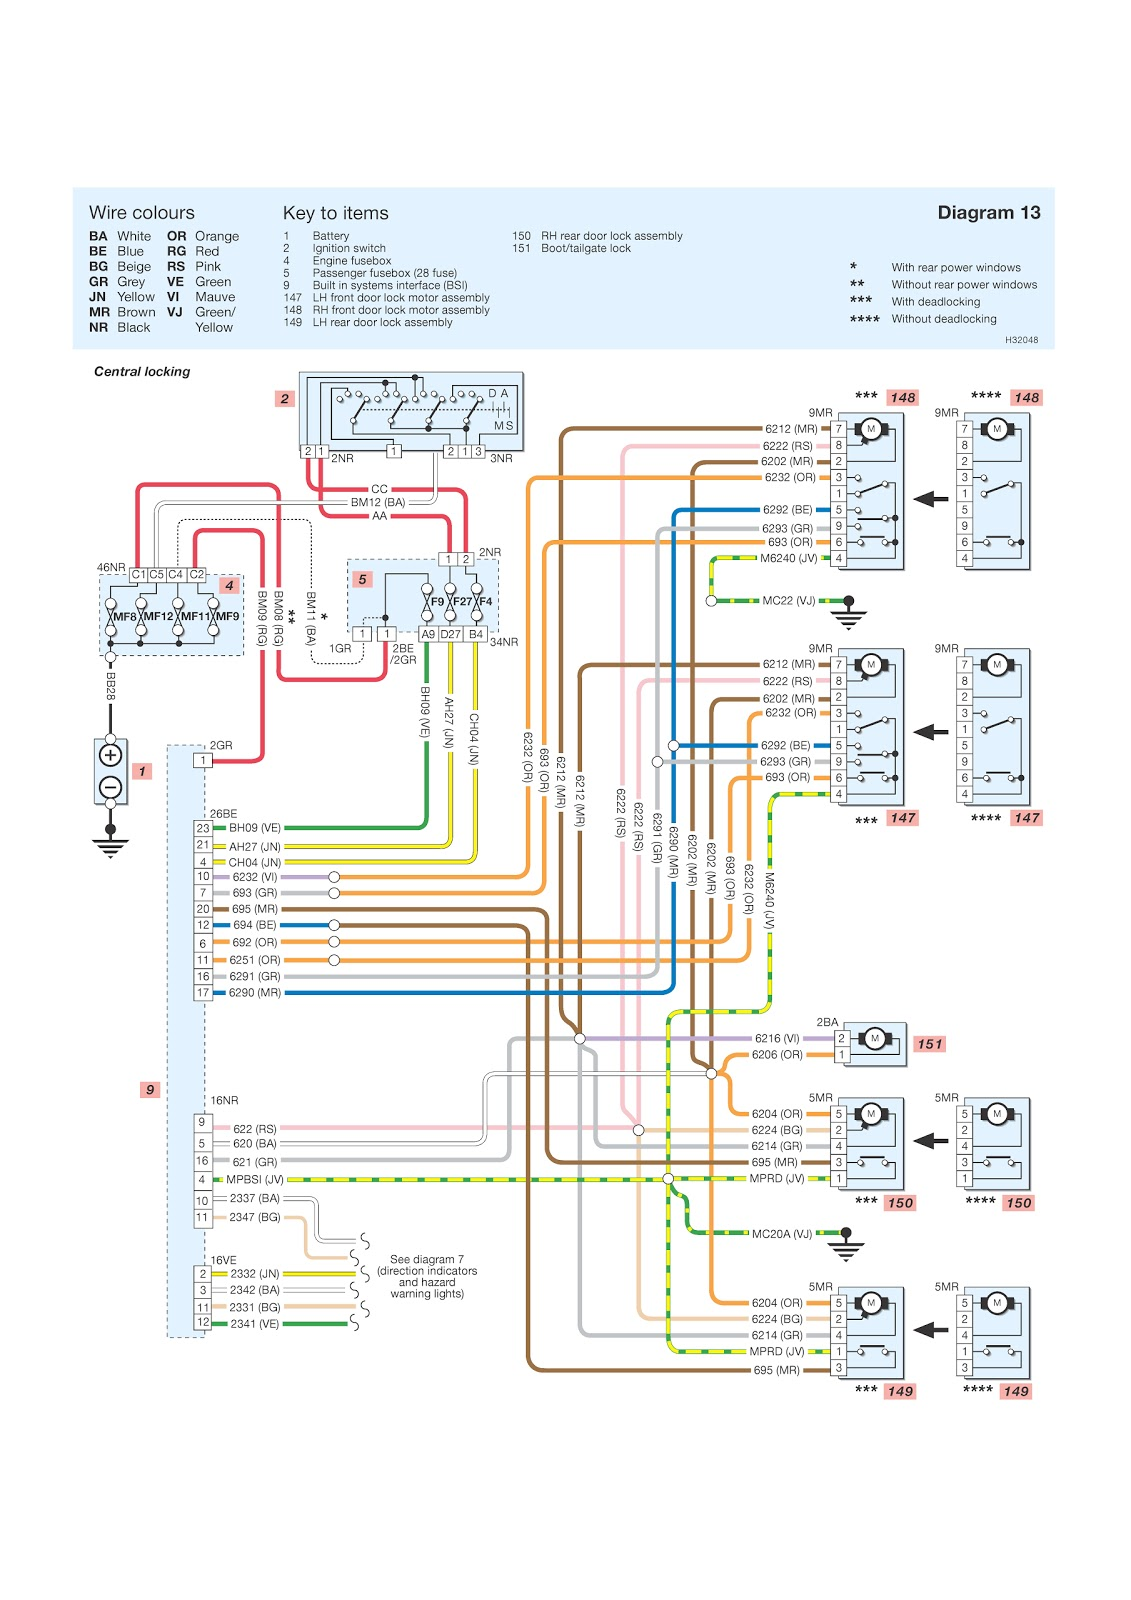 peugeot 206 wiring diagram for car alarm peugeot 206 wiring diagram radio